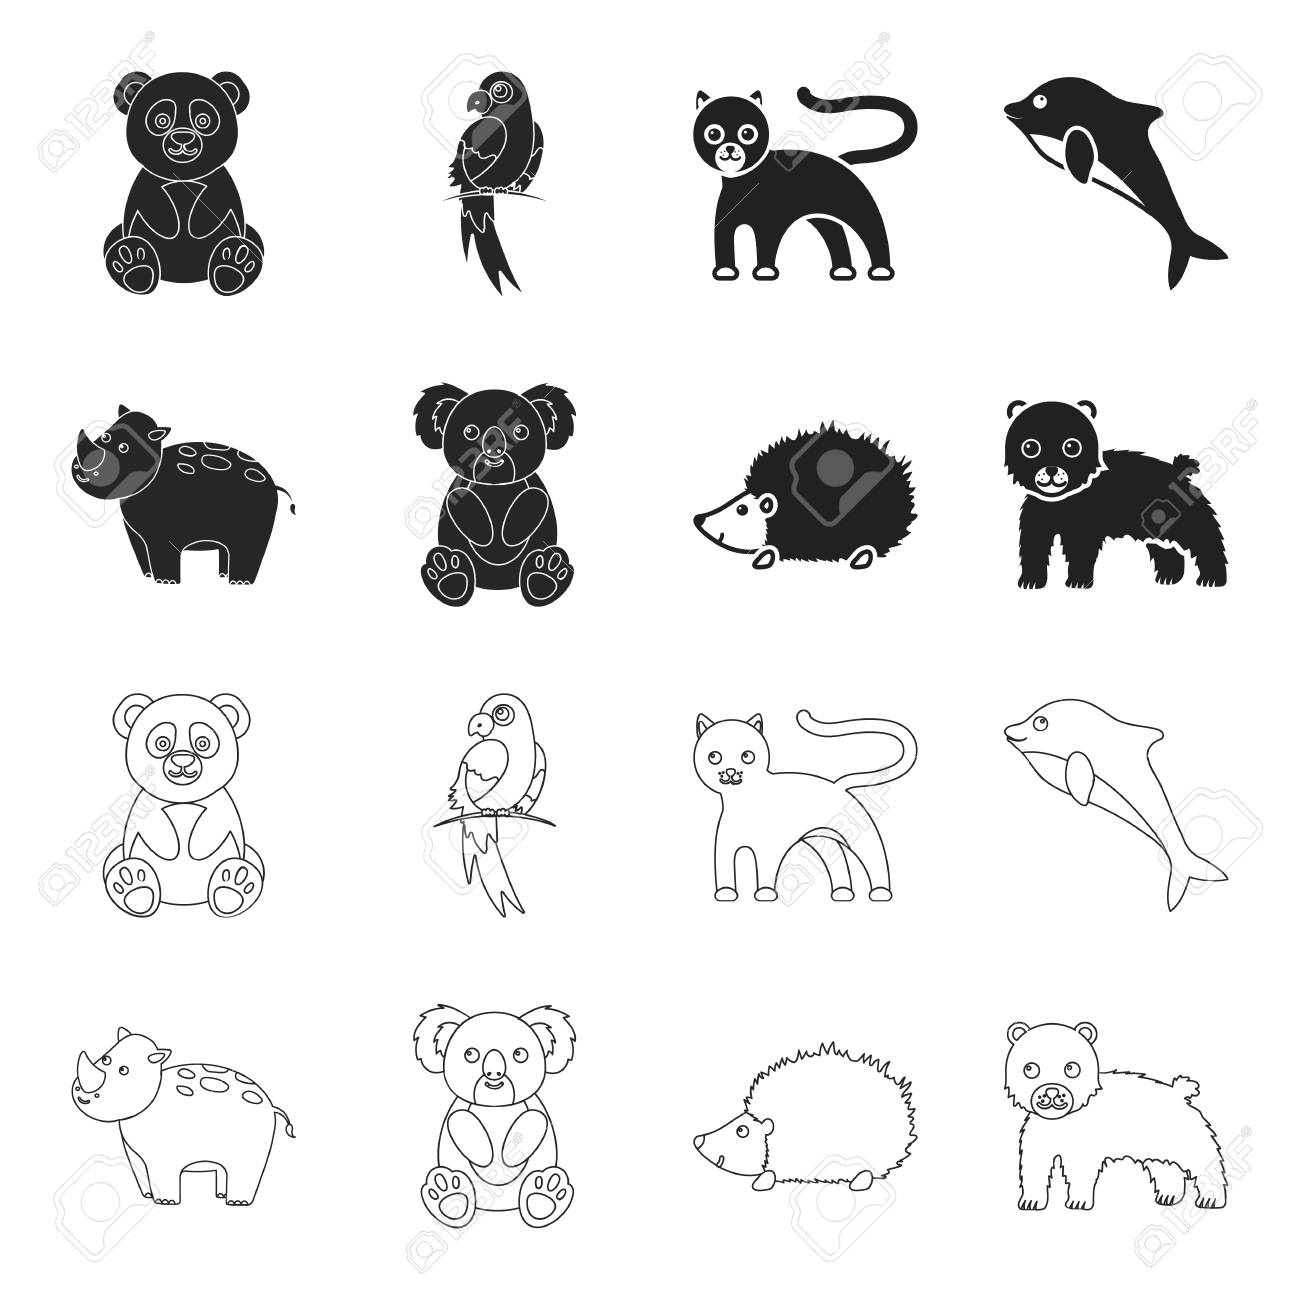 Rhino Koala Panther Hedgehogimal Set Collection Icons In